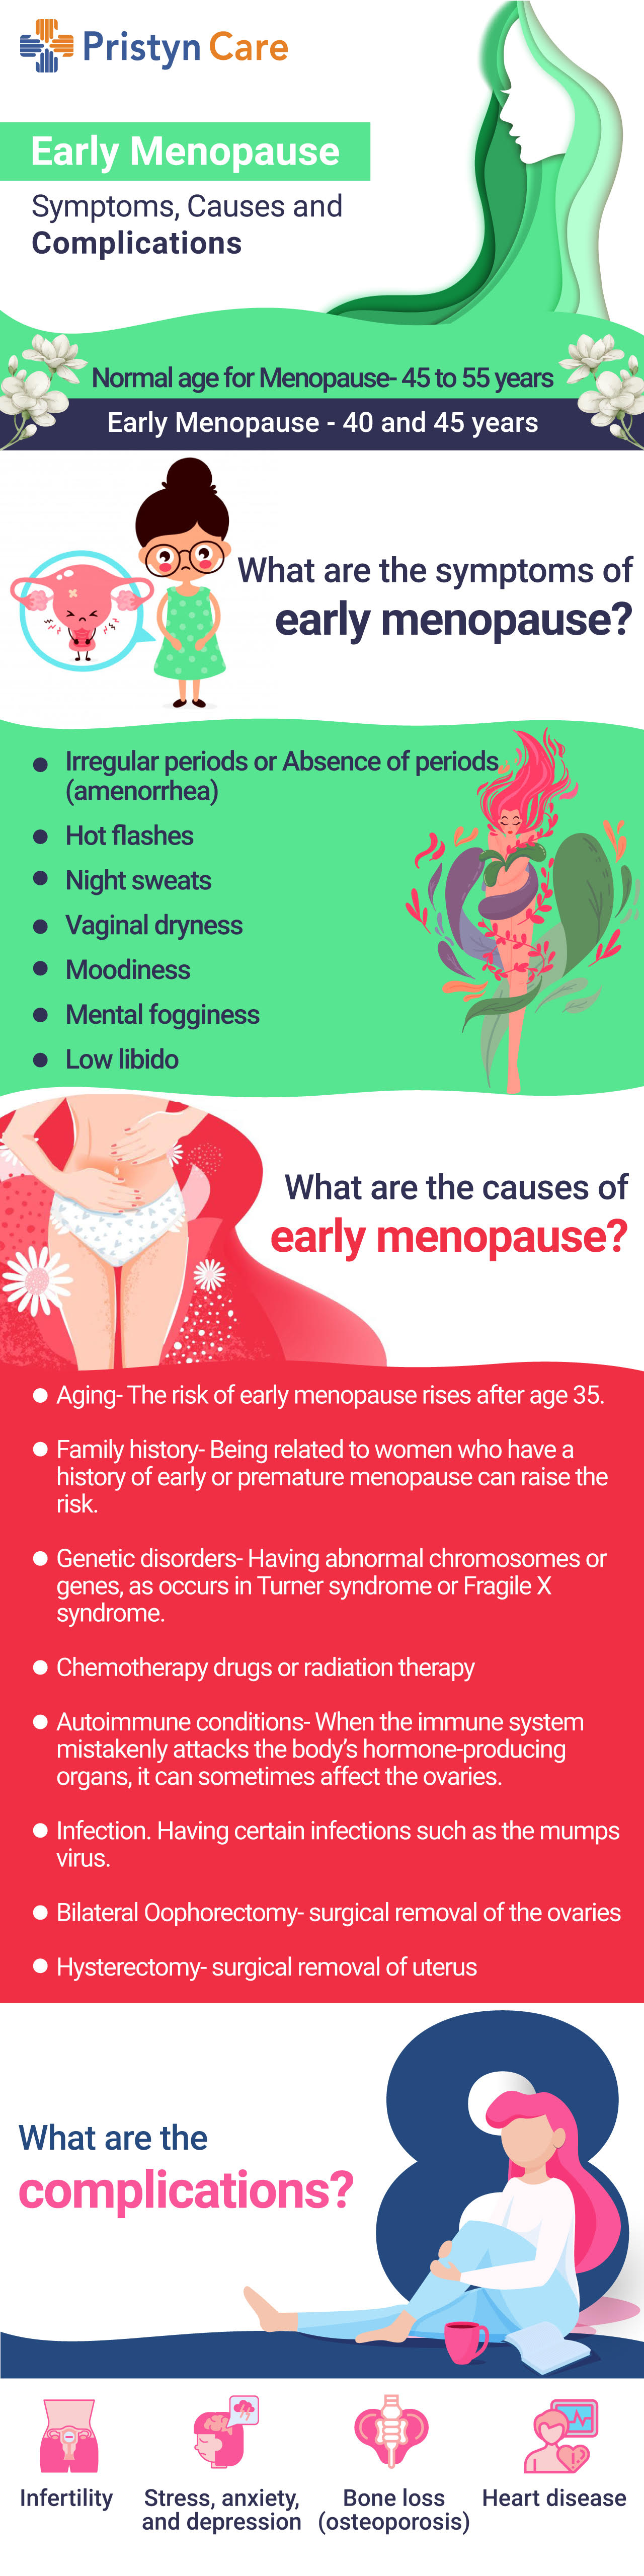 Early Menopause- Causes, Symptoms and Complications